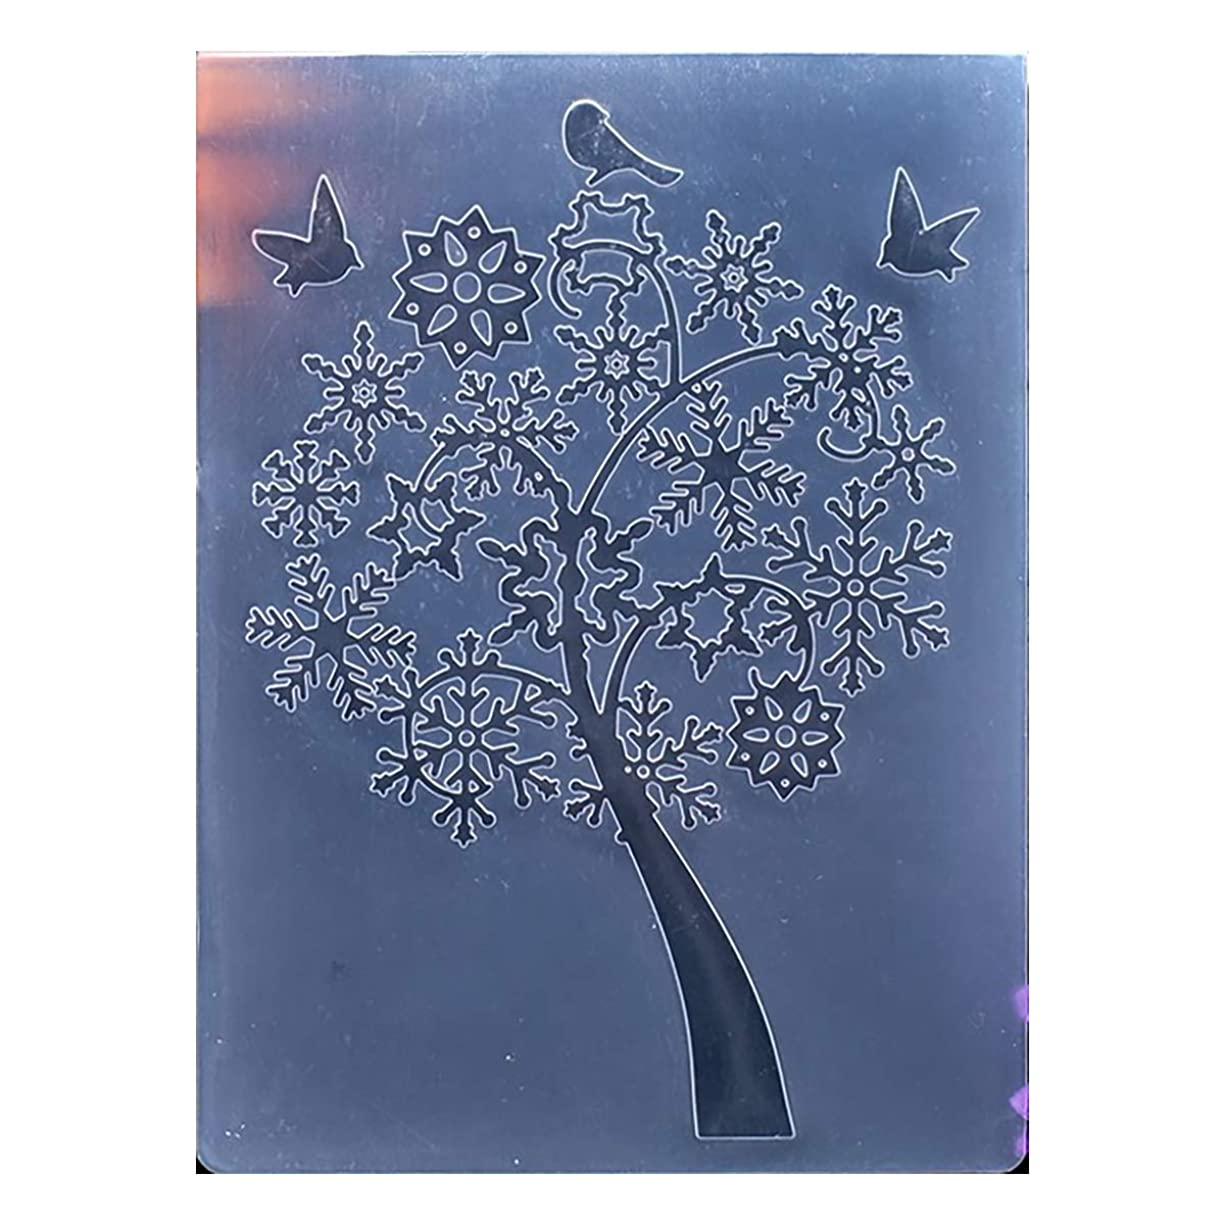 Kwan Crafts Merry Christmas Christmas Snowflake Tree Plastic Embossing Folders for Card Making Scrapbooking and Other Paper Crafts, 10.5x14.5cm